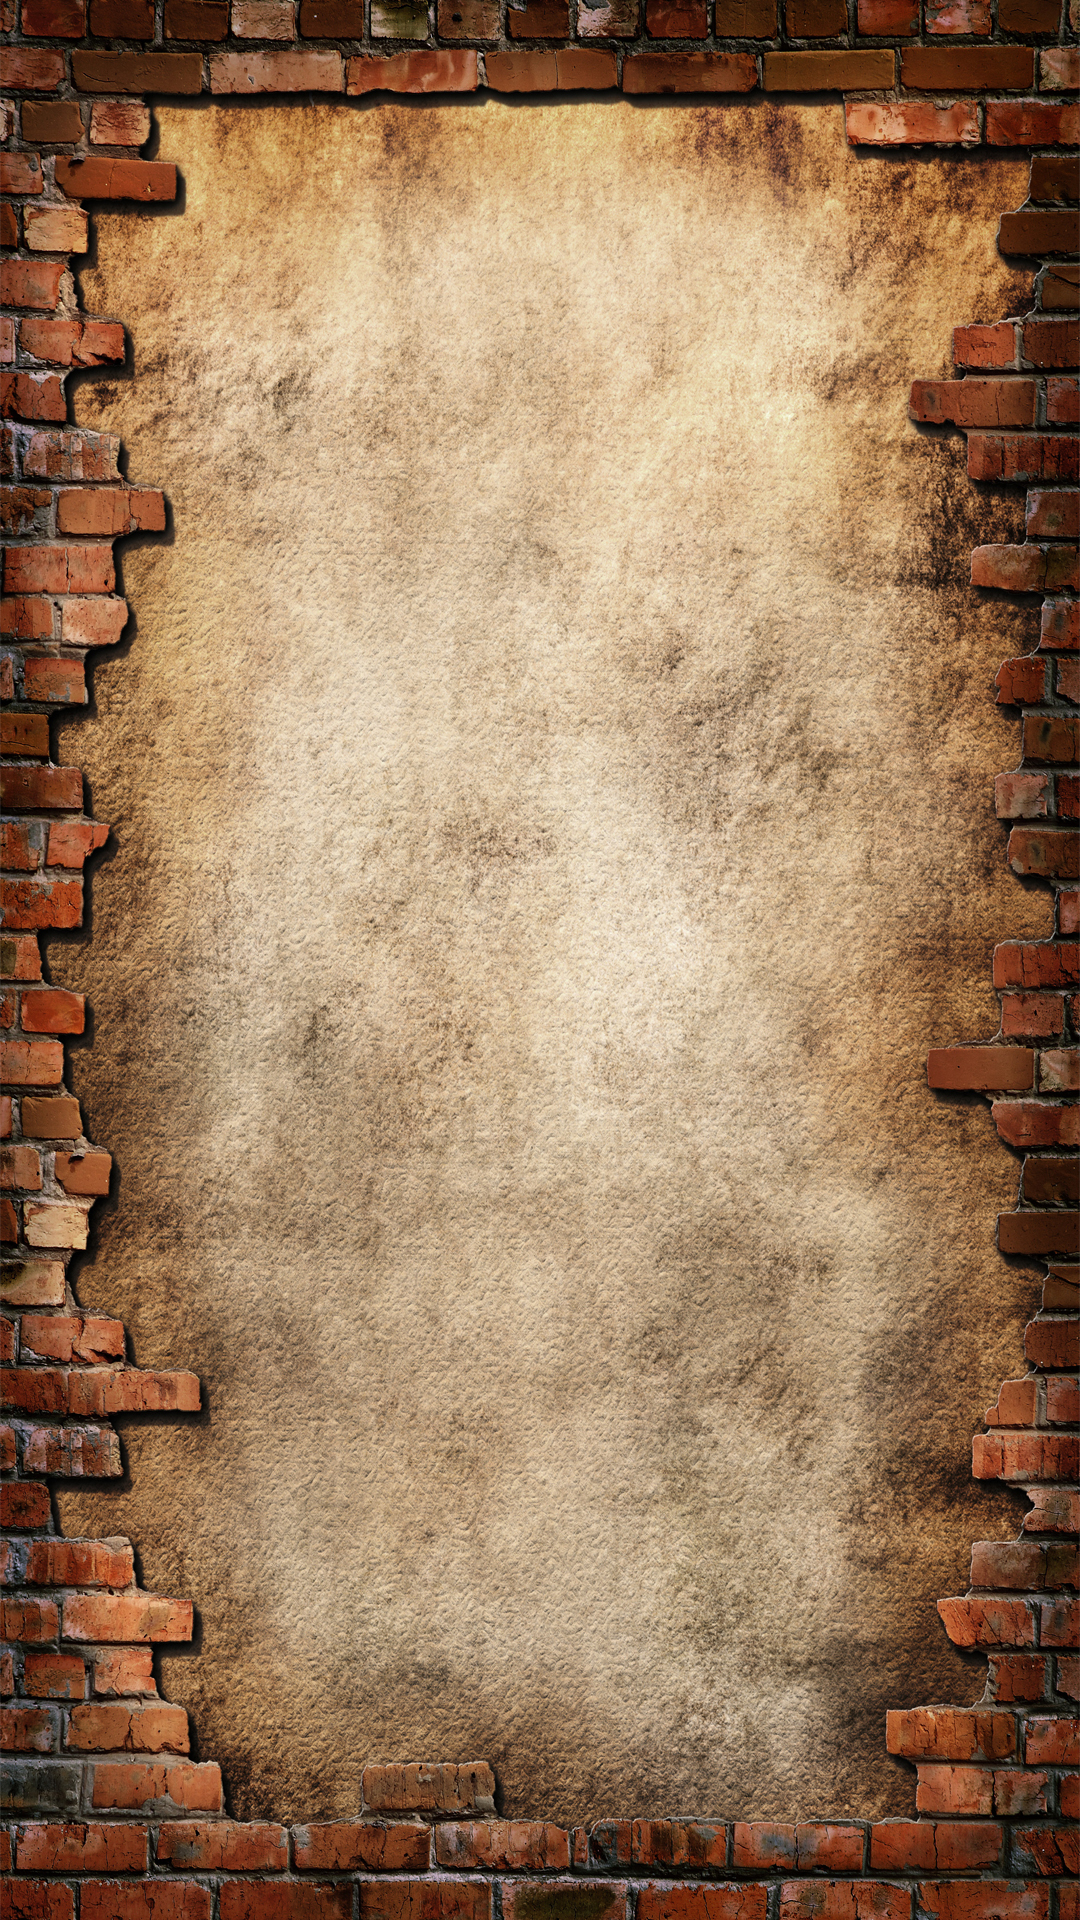 H5 Old Wall Background Material Old Wall Brick